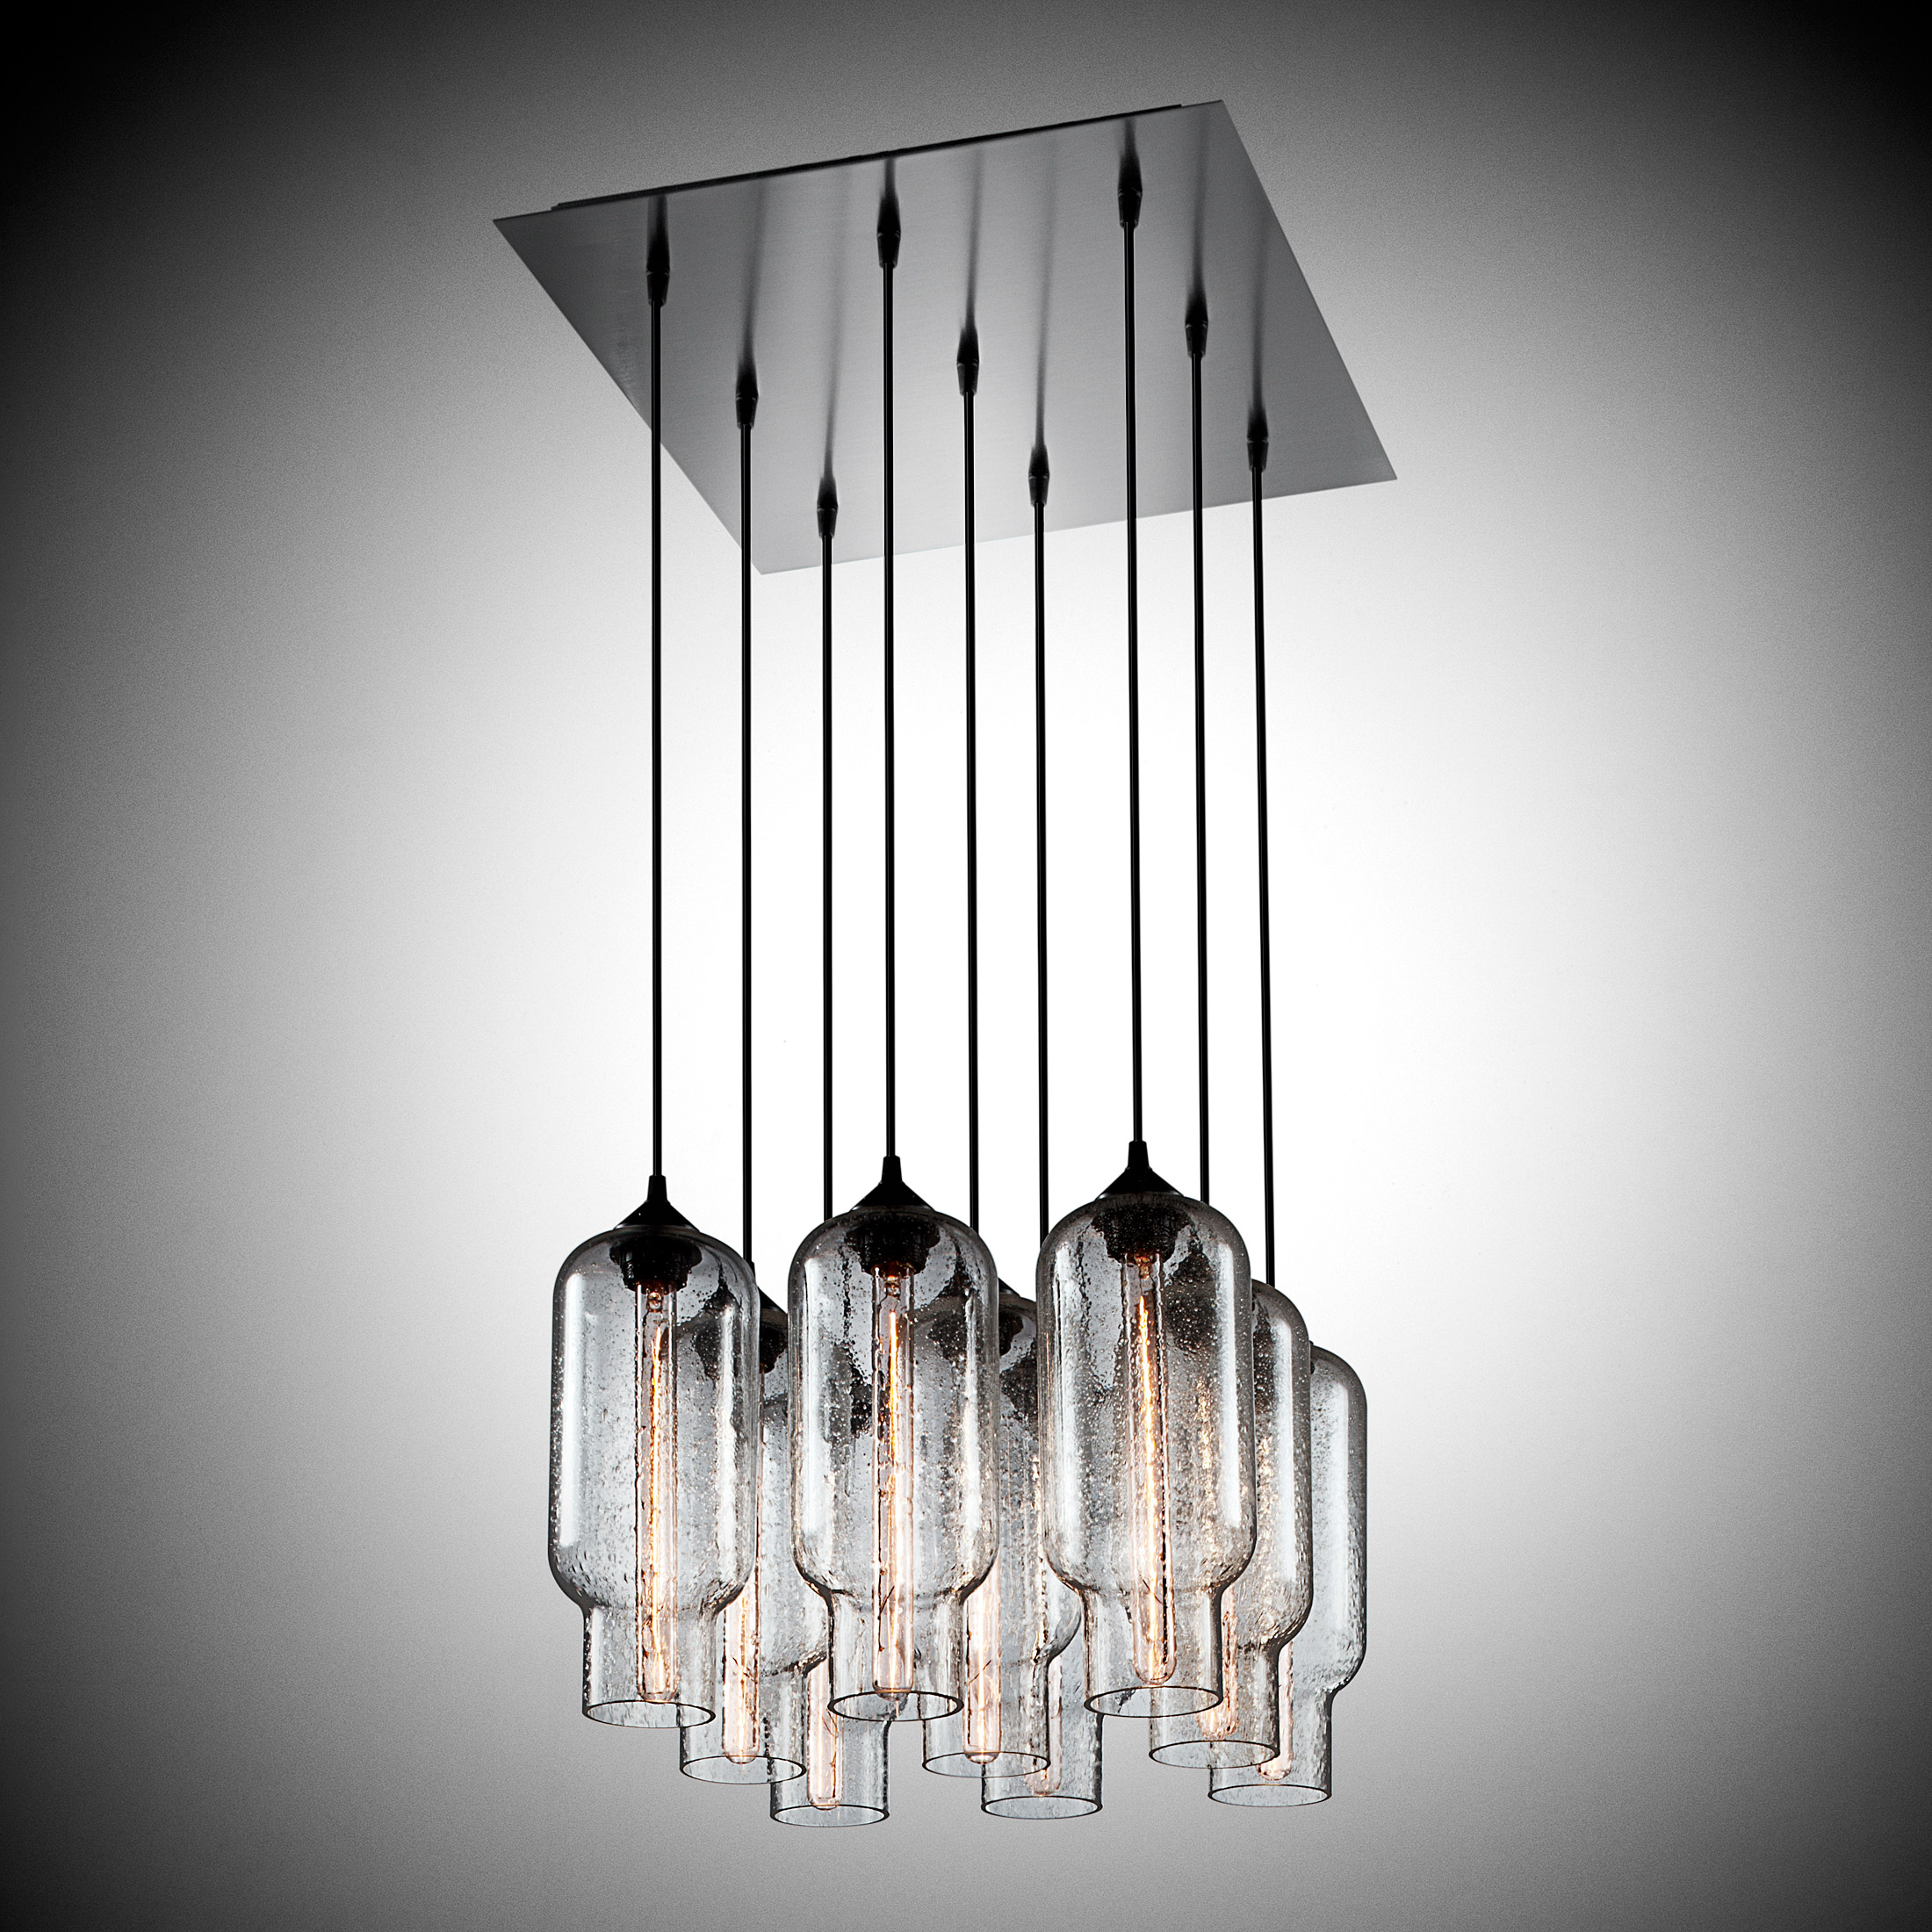 Glassy Contemporary Lighting